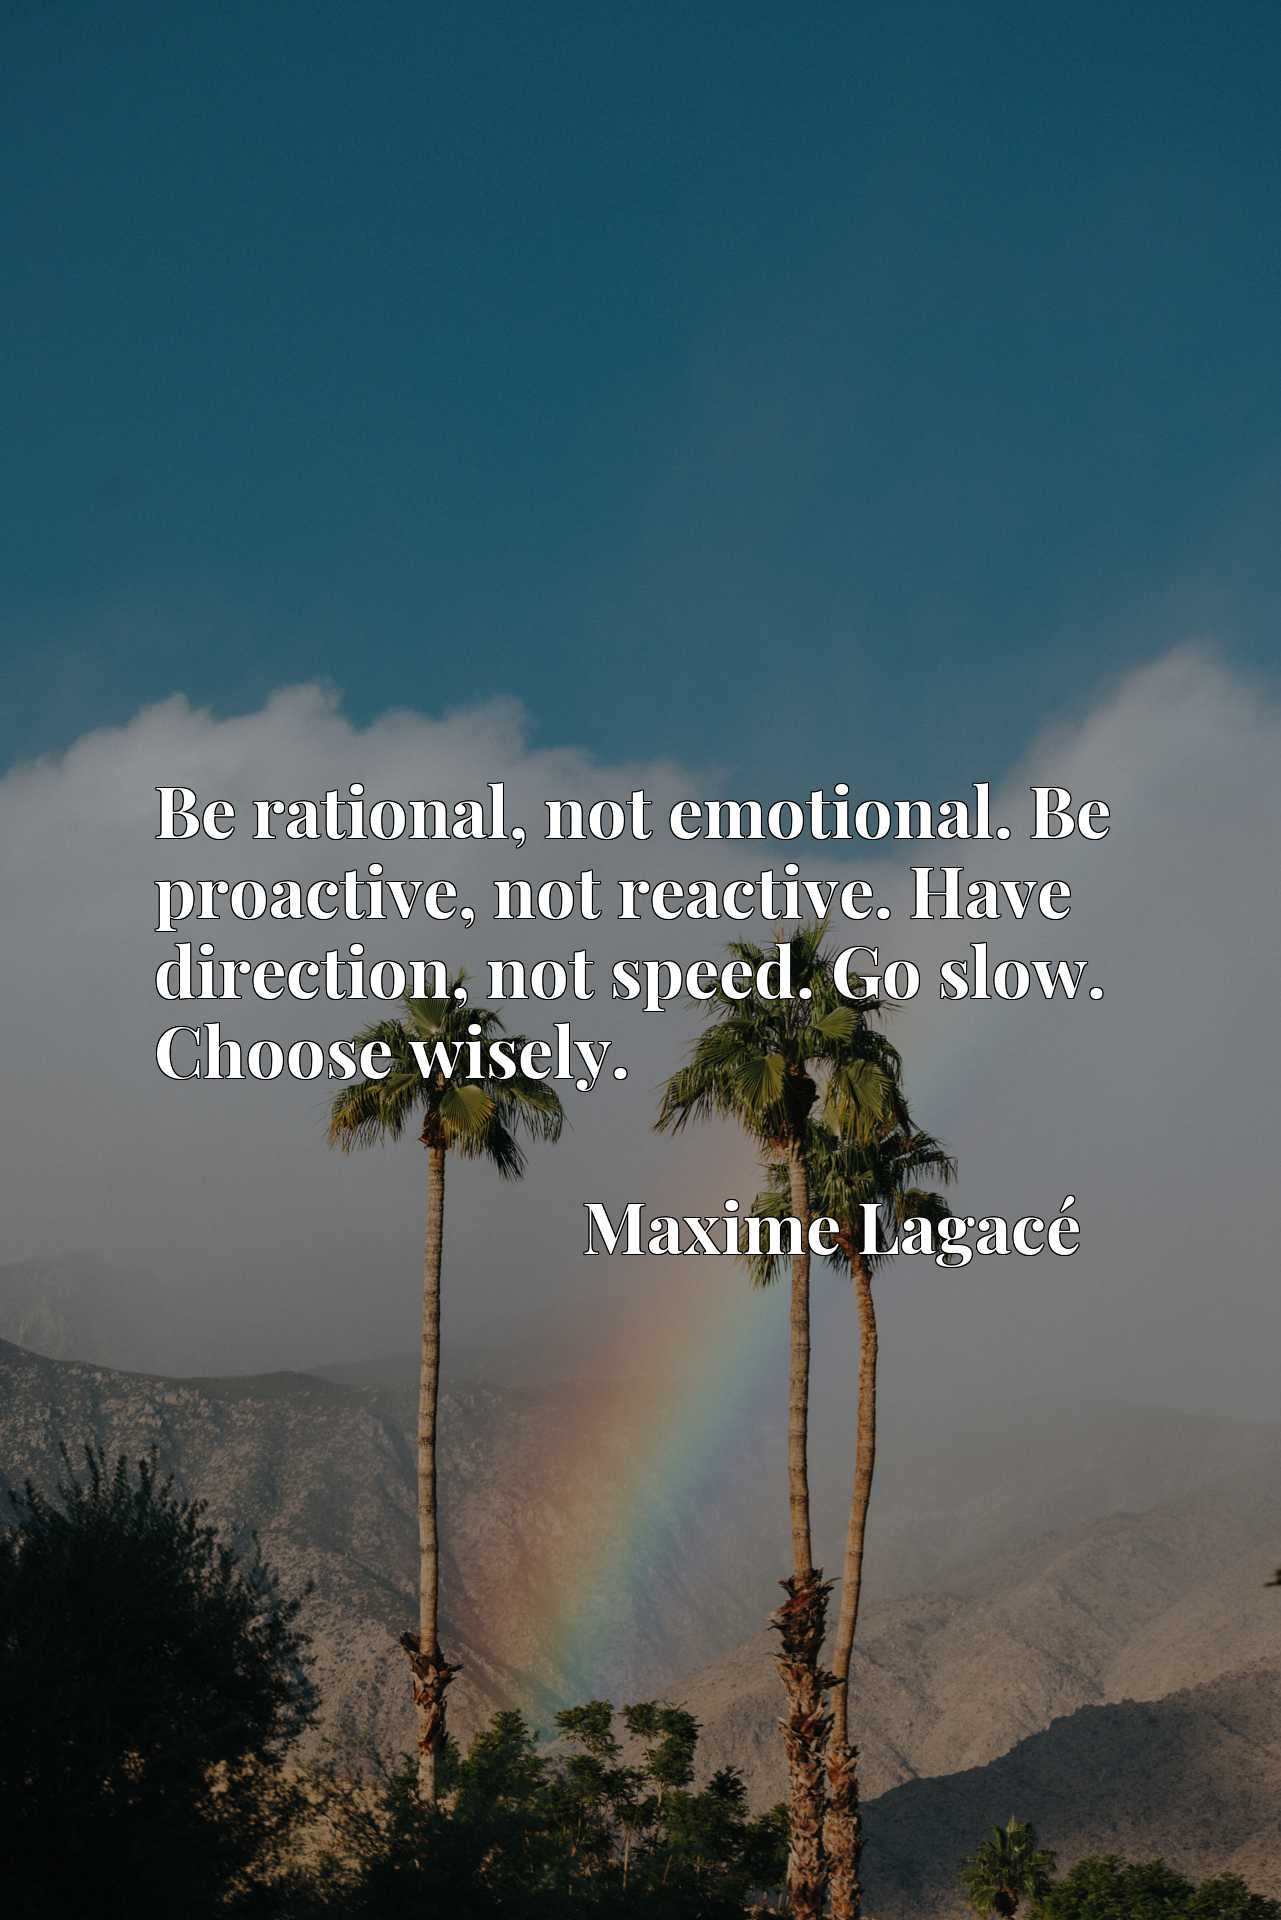 Quote Picture :Be rational, not emotional. Be proactive, not reactive. Have direction, not speed. Go slow. Choose wisely.